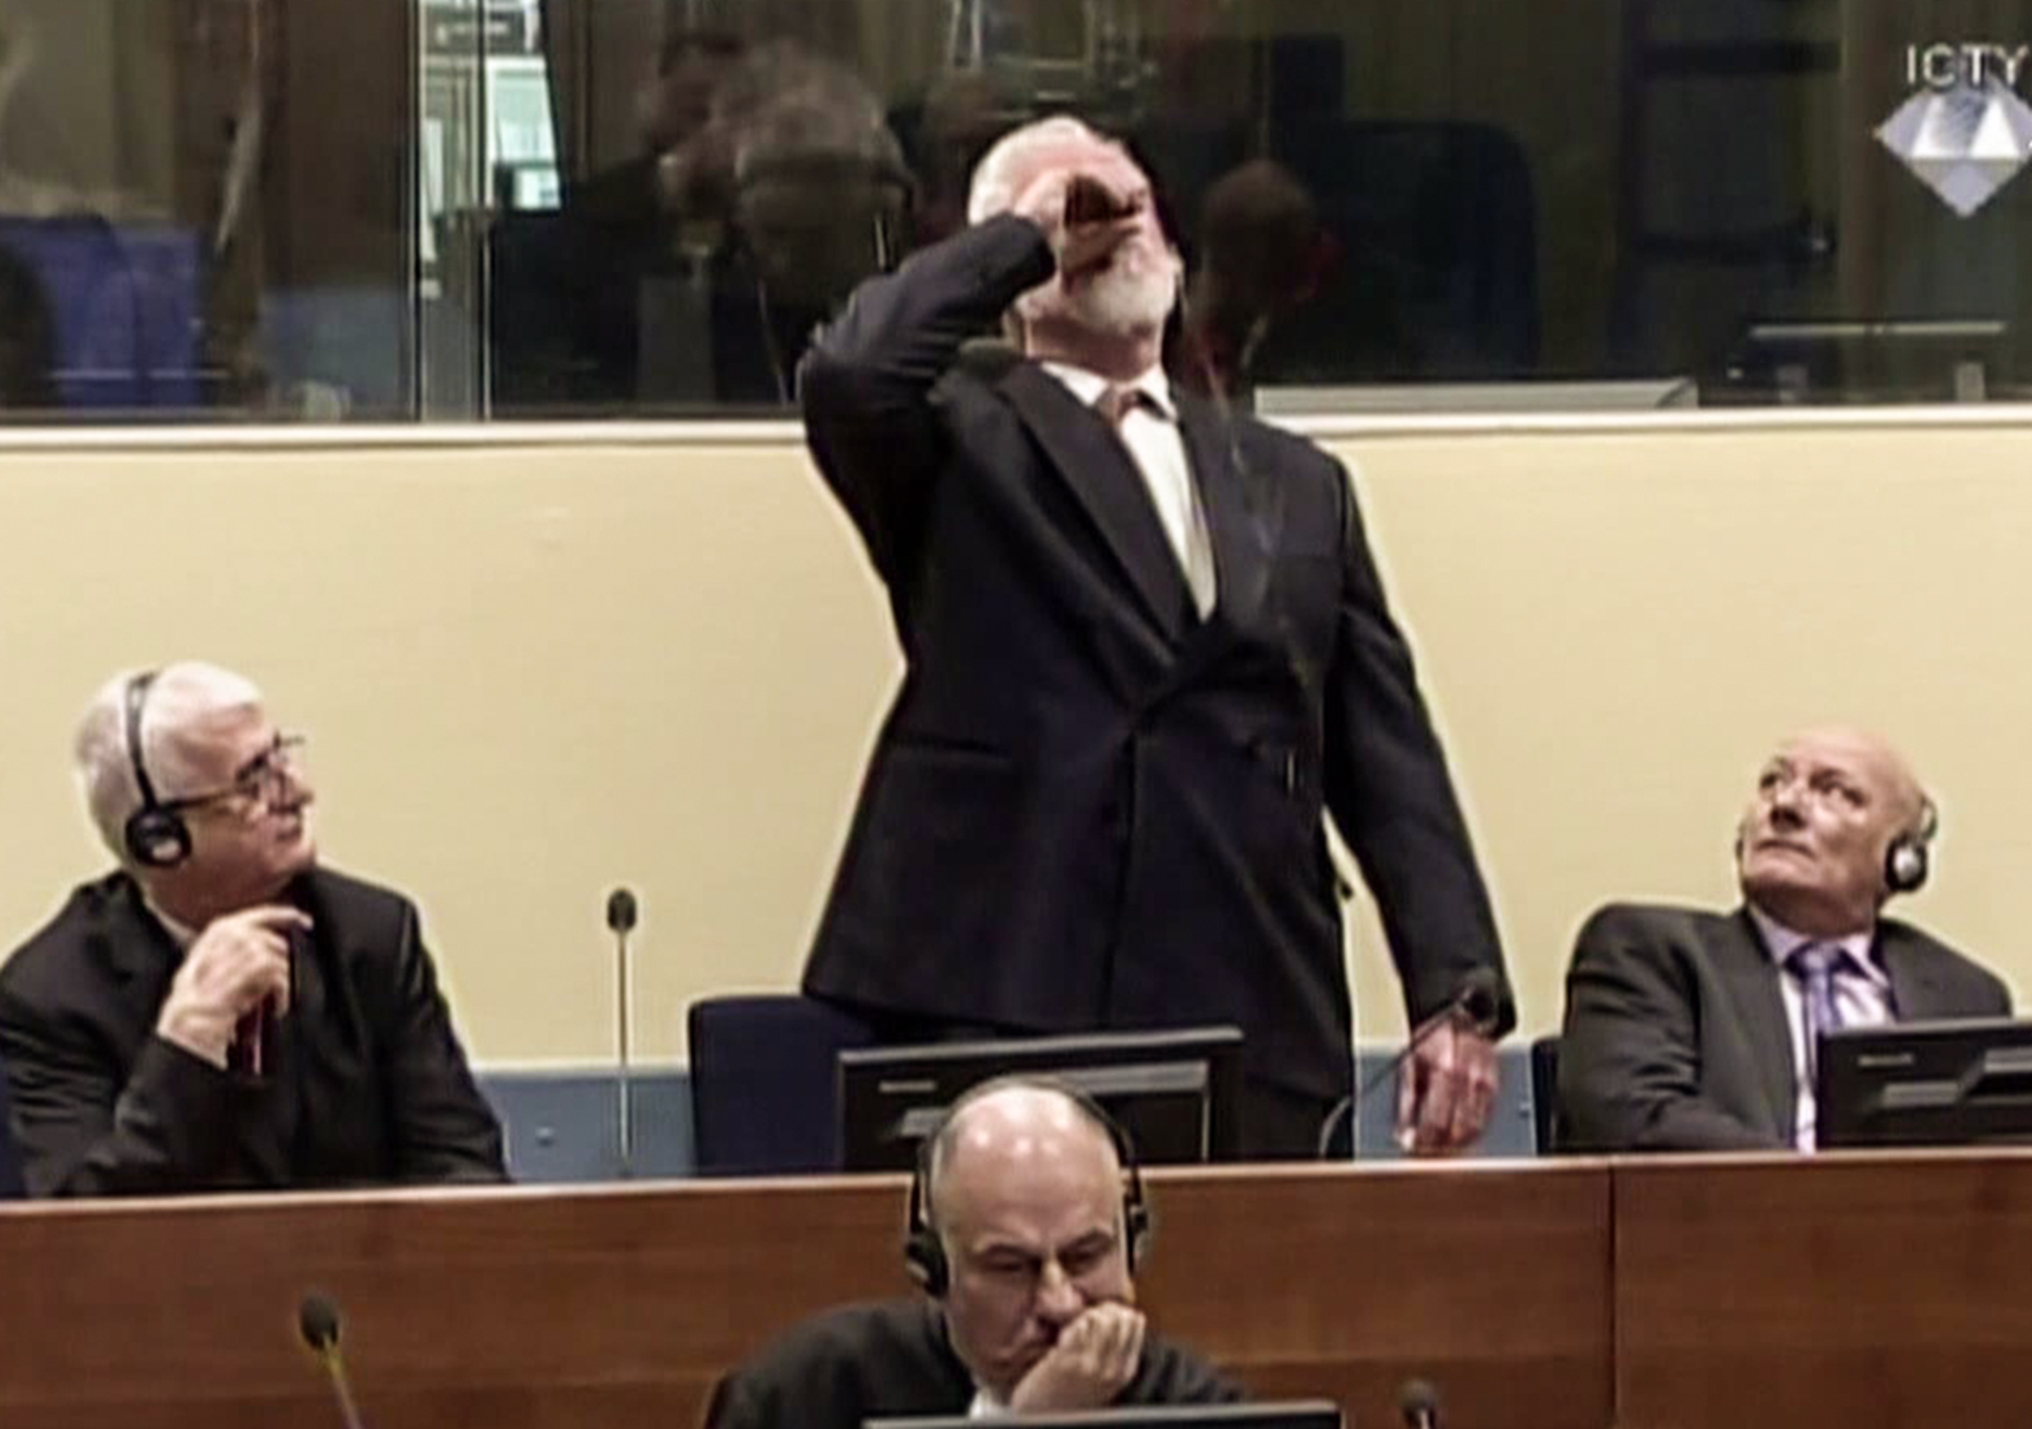 War Criminal Swallowing Court >> Dutch probe Bosnian war criminal's suicide in UN court